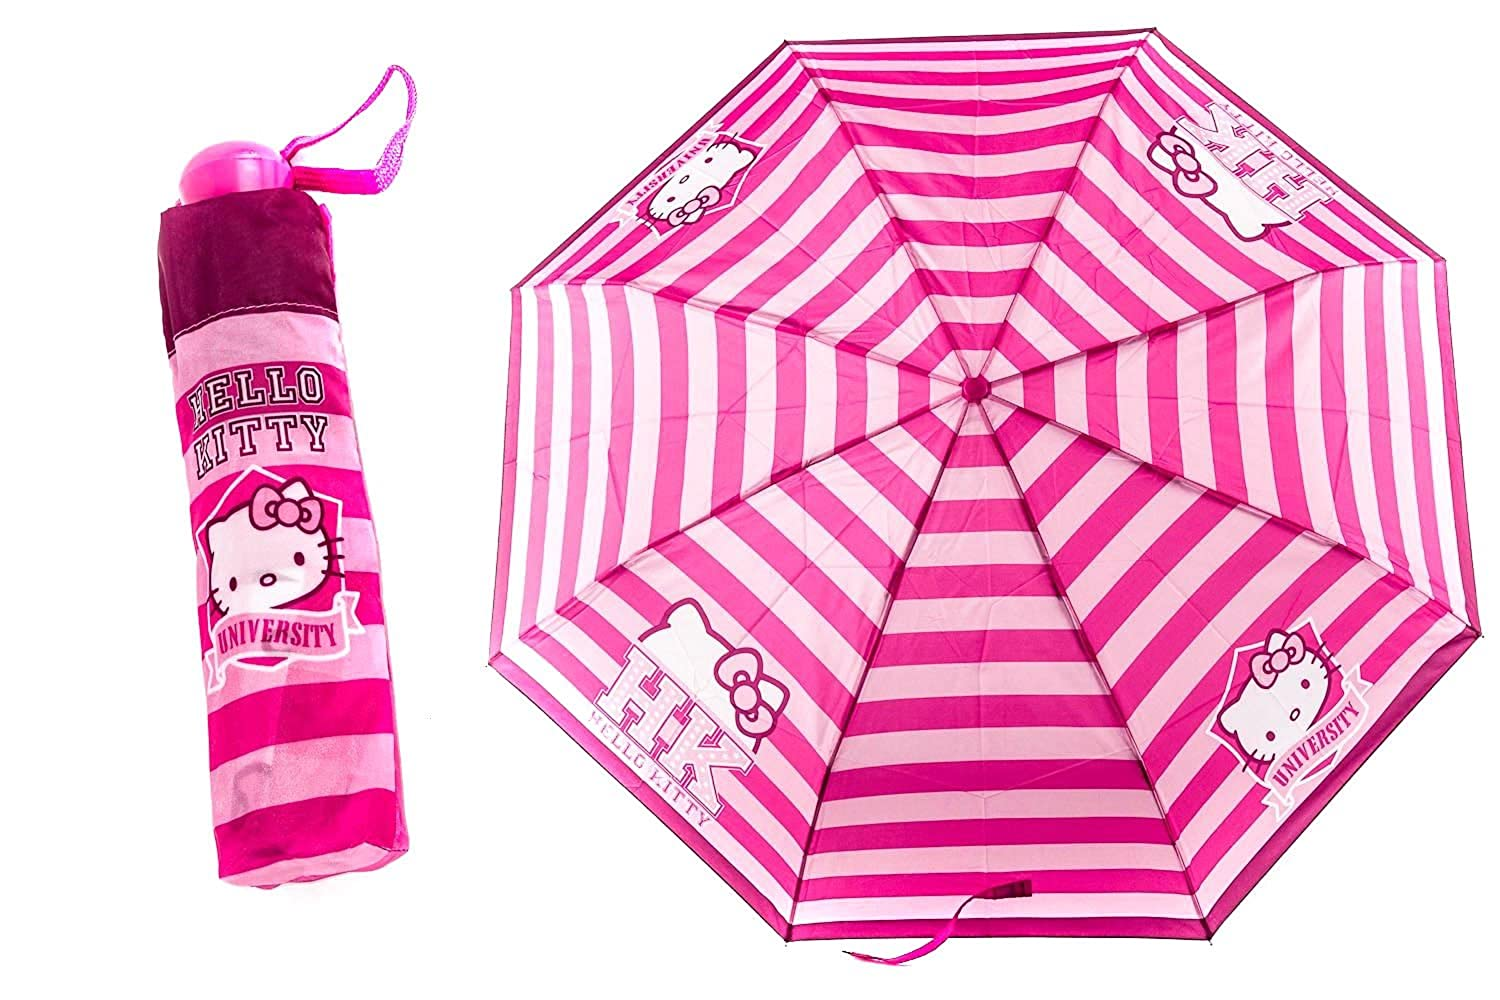 Paraguas niña mini PERLETTI HELLO KITTY fantasía rosa LOGATO manual Q828: Amazon.es: Zapatos y complementos